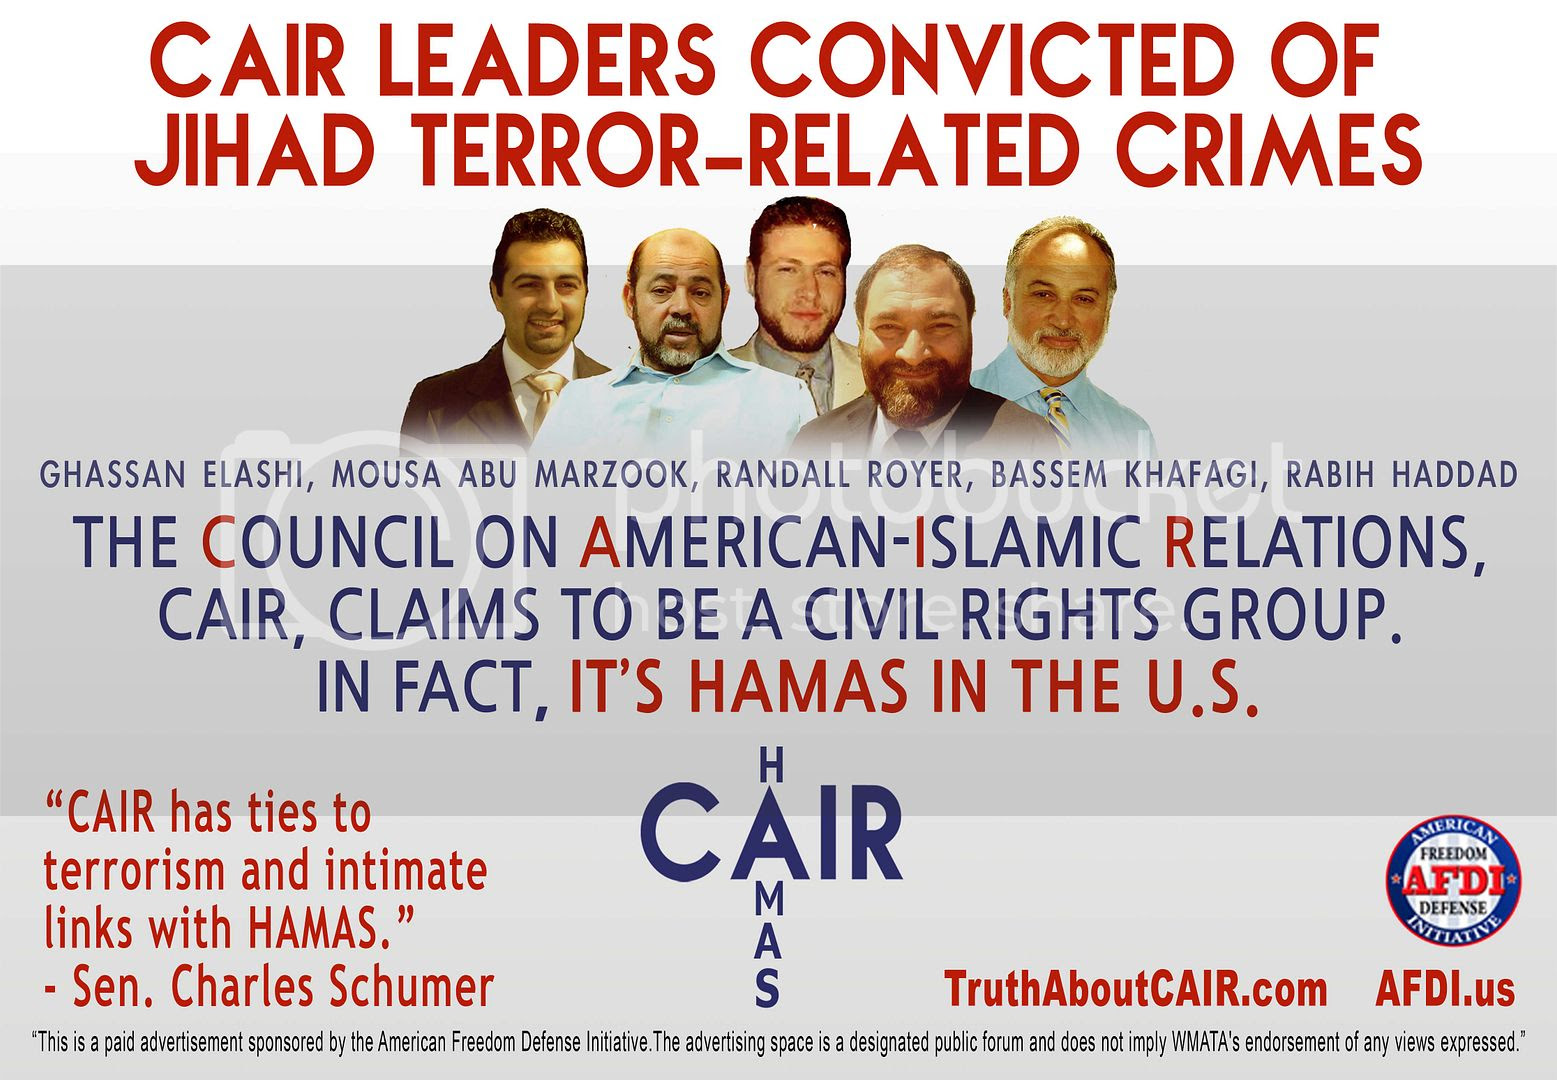 Truth About CAIR photo CAIRdiorama32_zps330fbc66.jpg